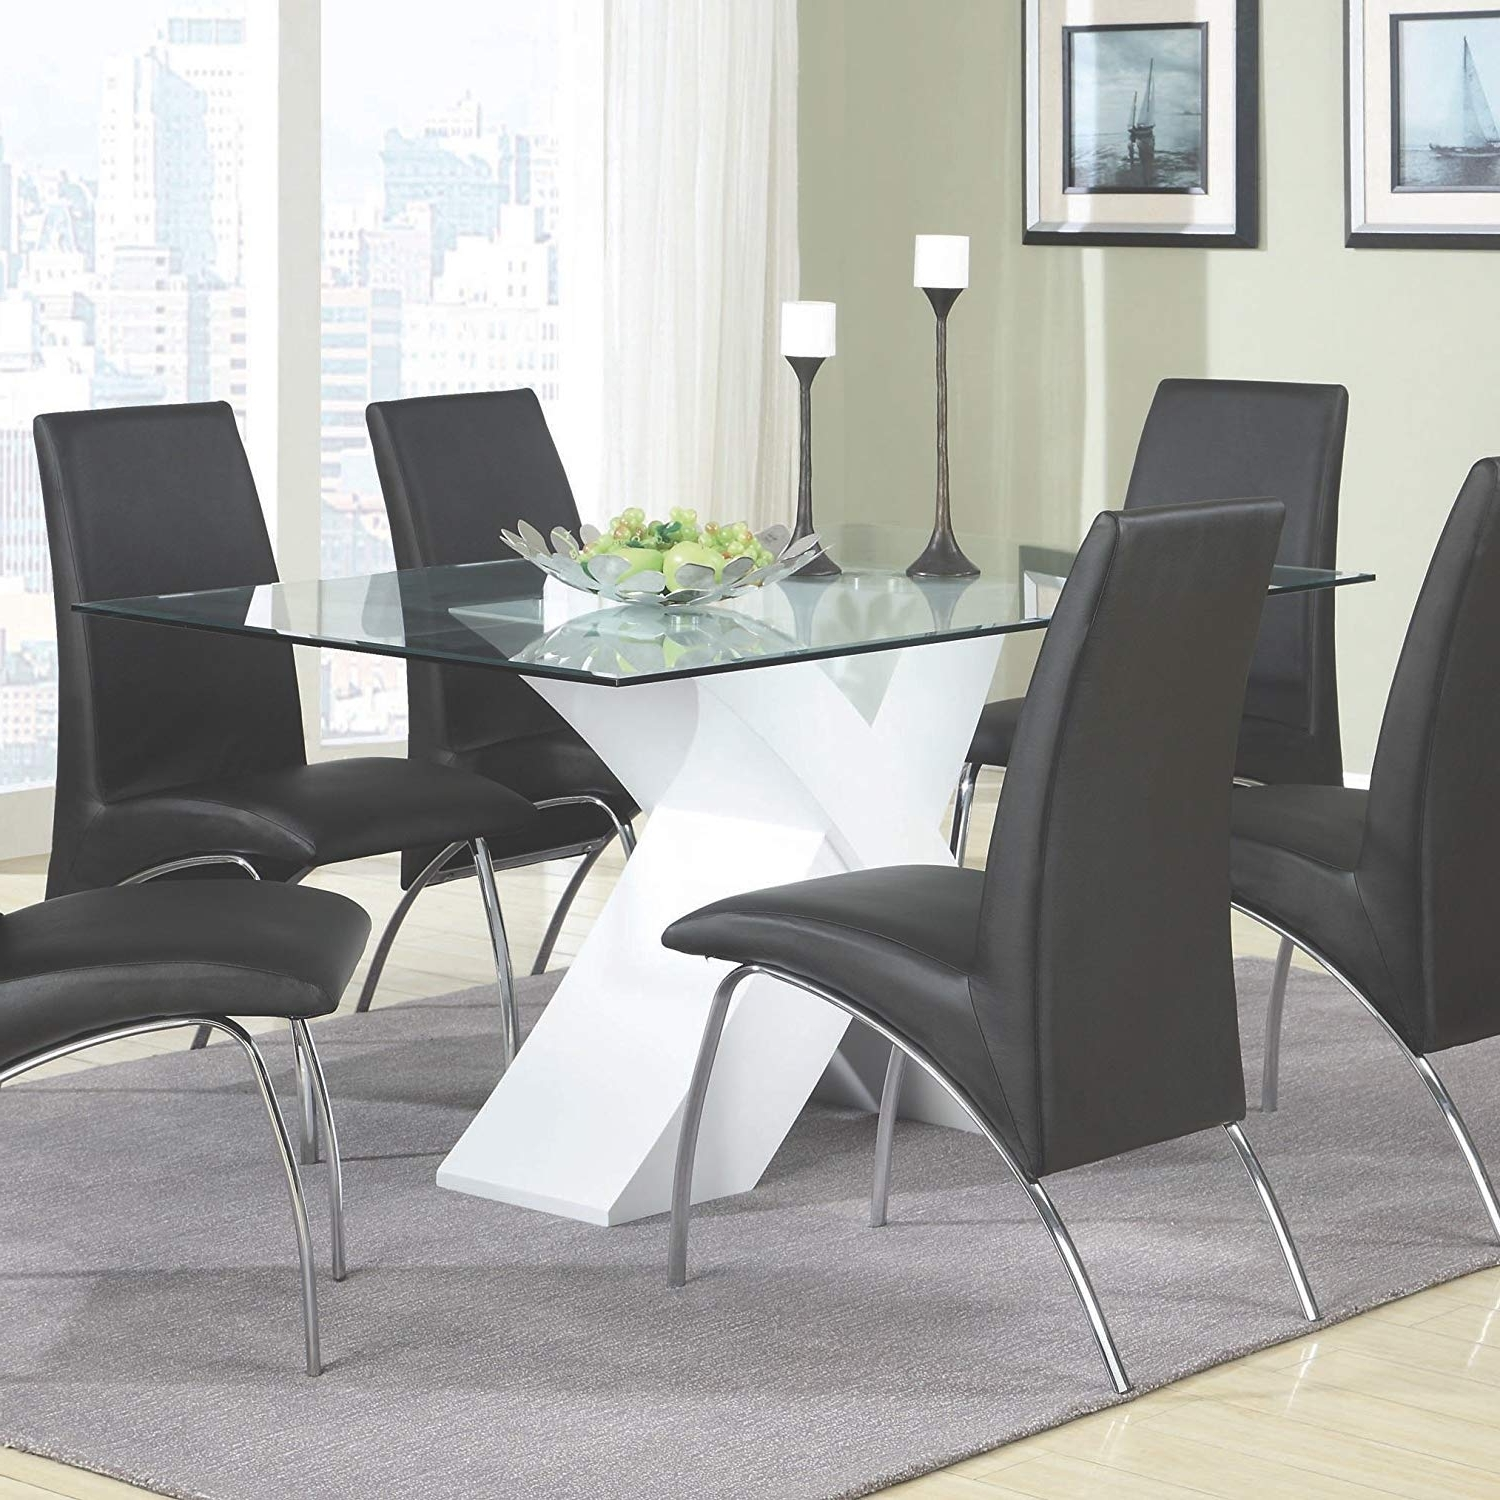 2018 Modern Dining Tables With Amazon: Coaster Home Furnishings 120821 Contemporary Glass Top (Gallery 9 of 25)